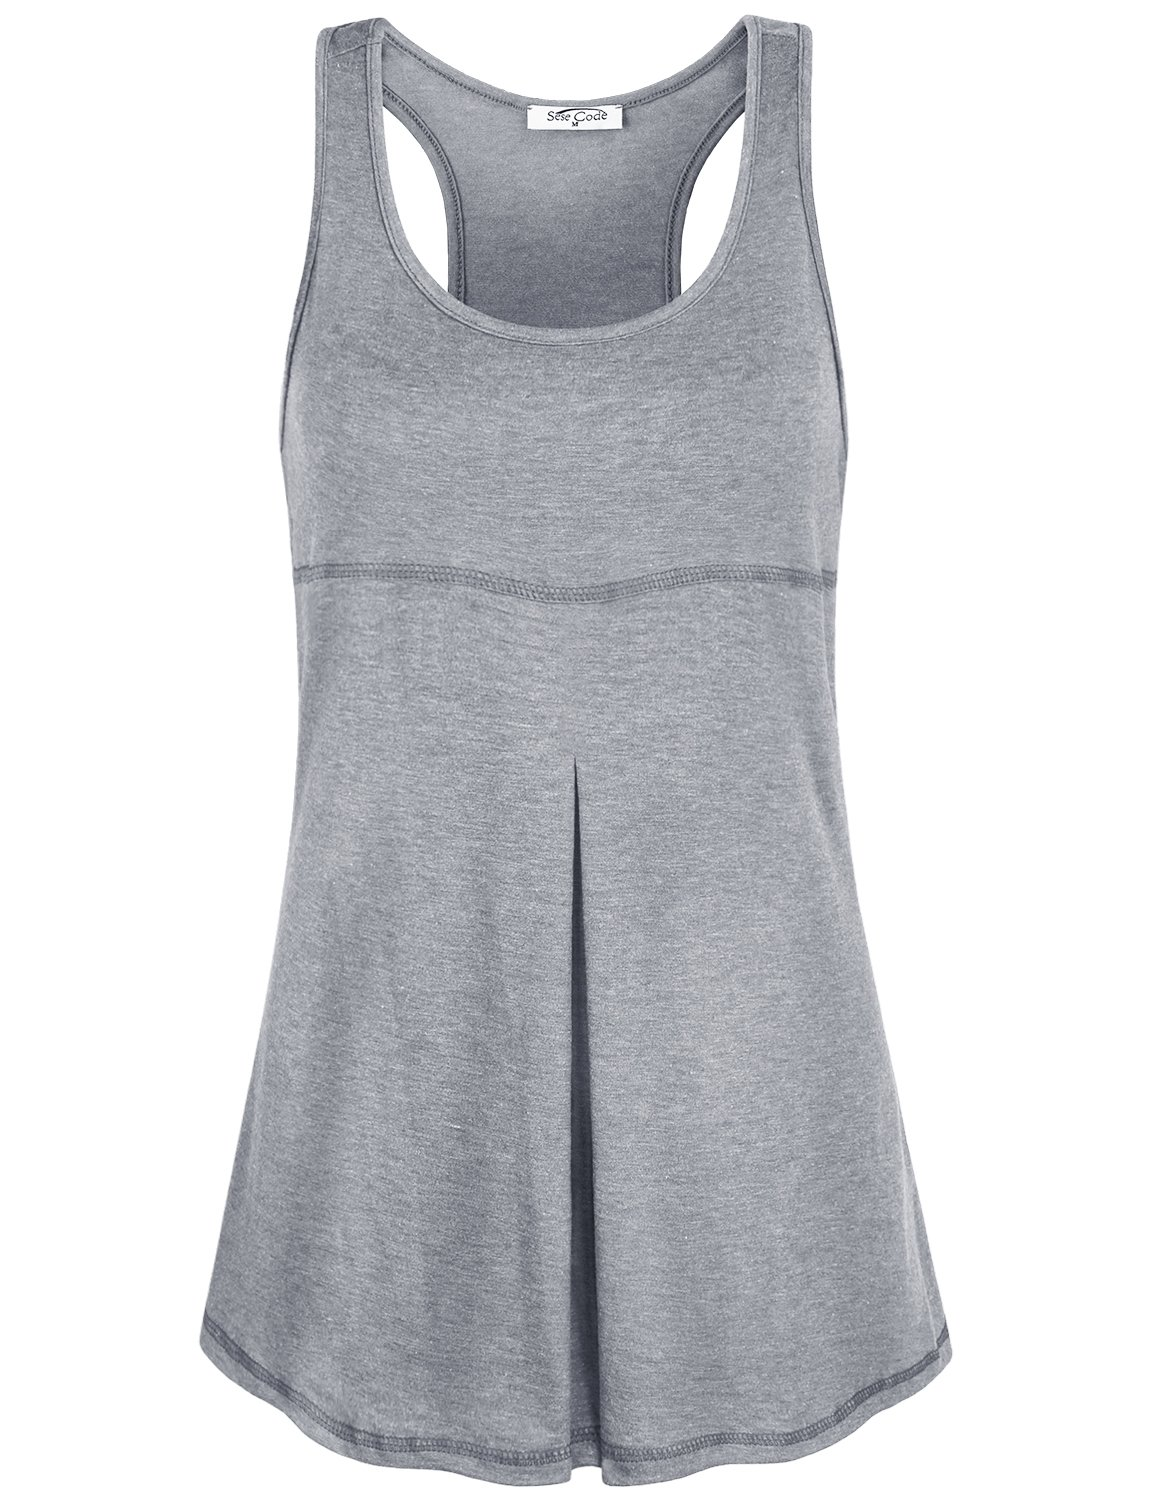 SeSe Code Wing Tank for Women, Juniors Summer Racerback Scoop Neck Sleeveless Front Pleats Tunics Stitching Designs Slim Fitted Elastic Fabric Solid Color Running Tops Mother's Day Dark Grey Medium